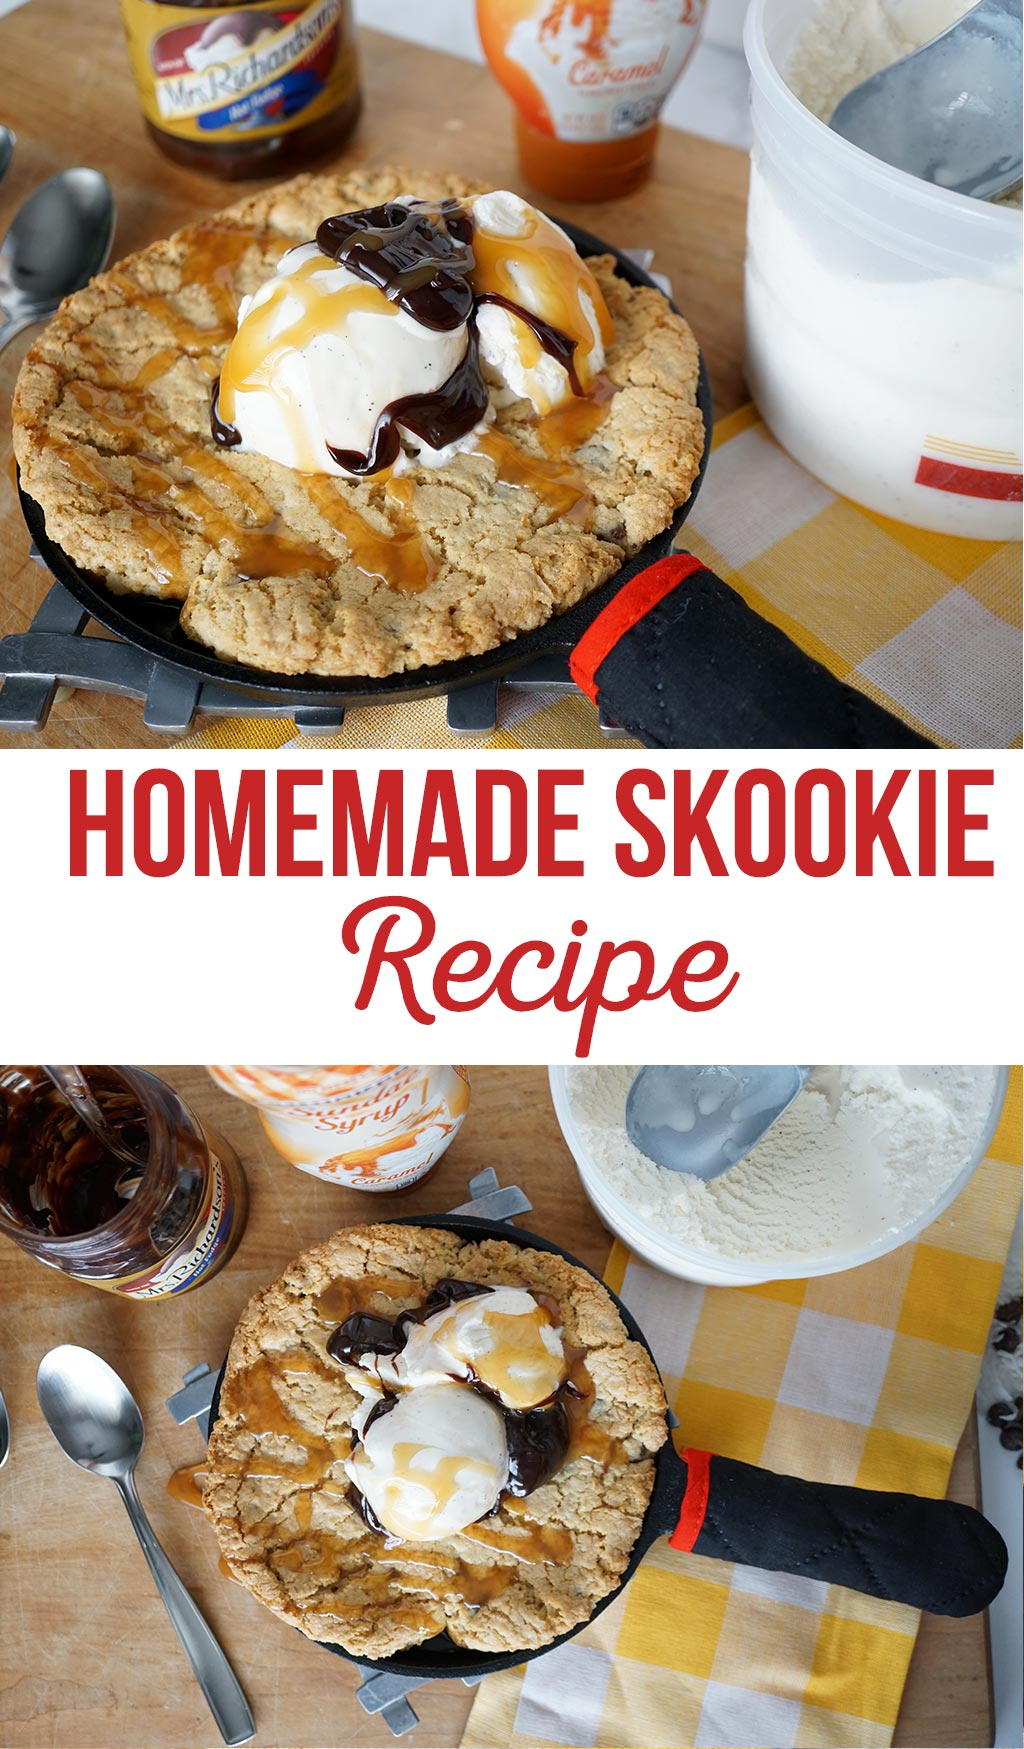 The BEST Homemade Skookie Recipe | Skookies = skillet + cookies | Whatever you want to call this dessert of deliciousness... these are amazing!